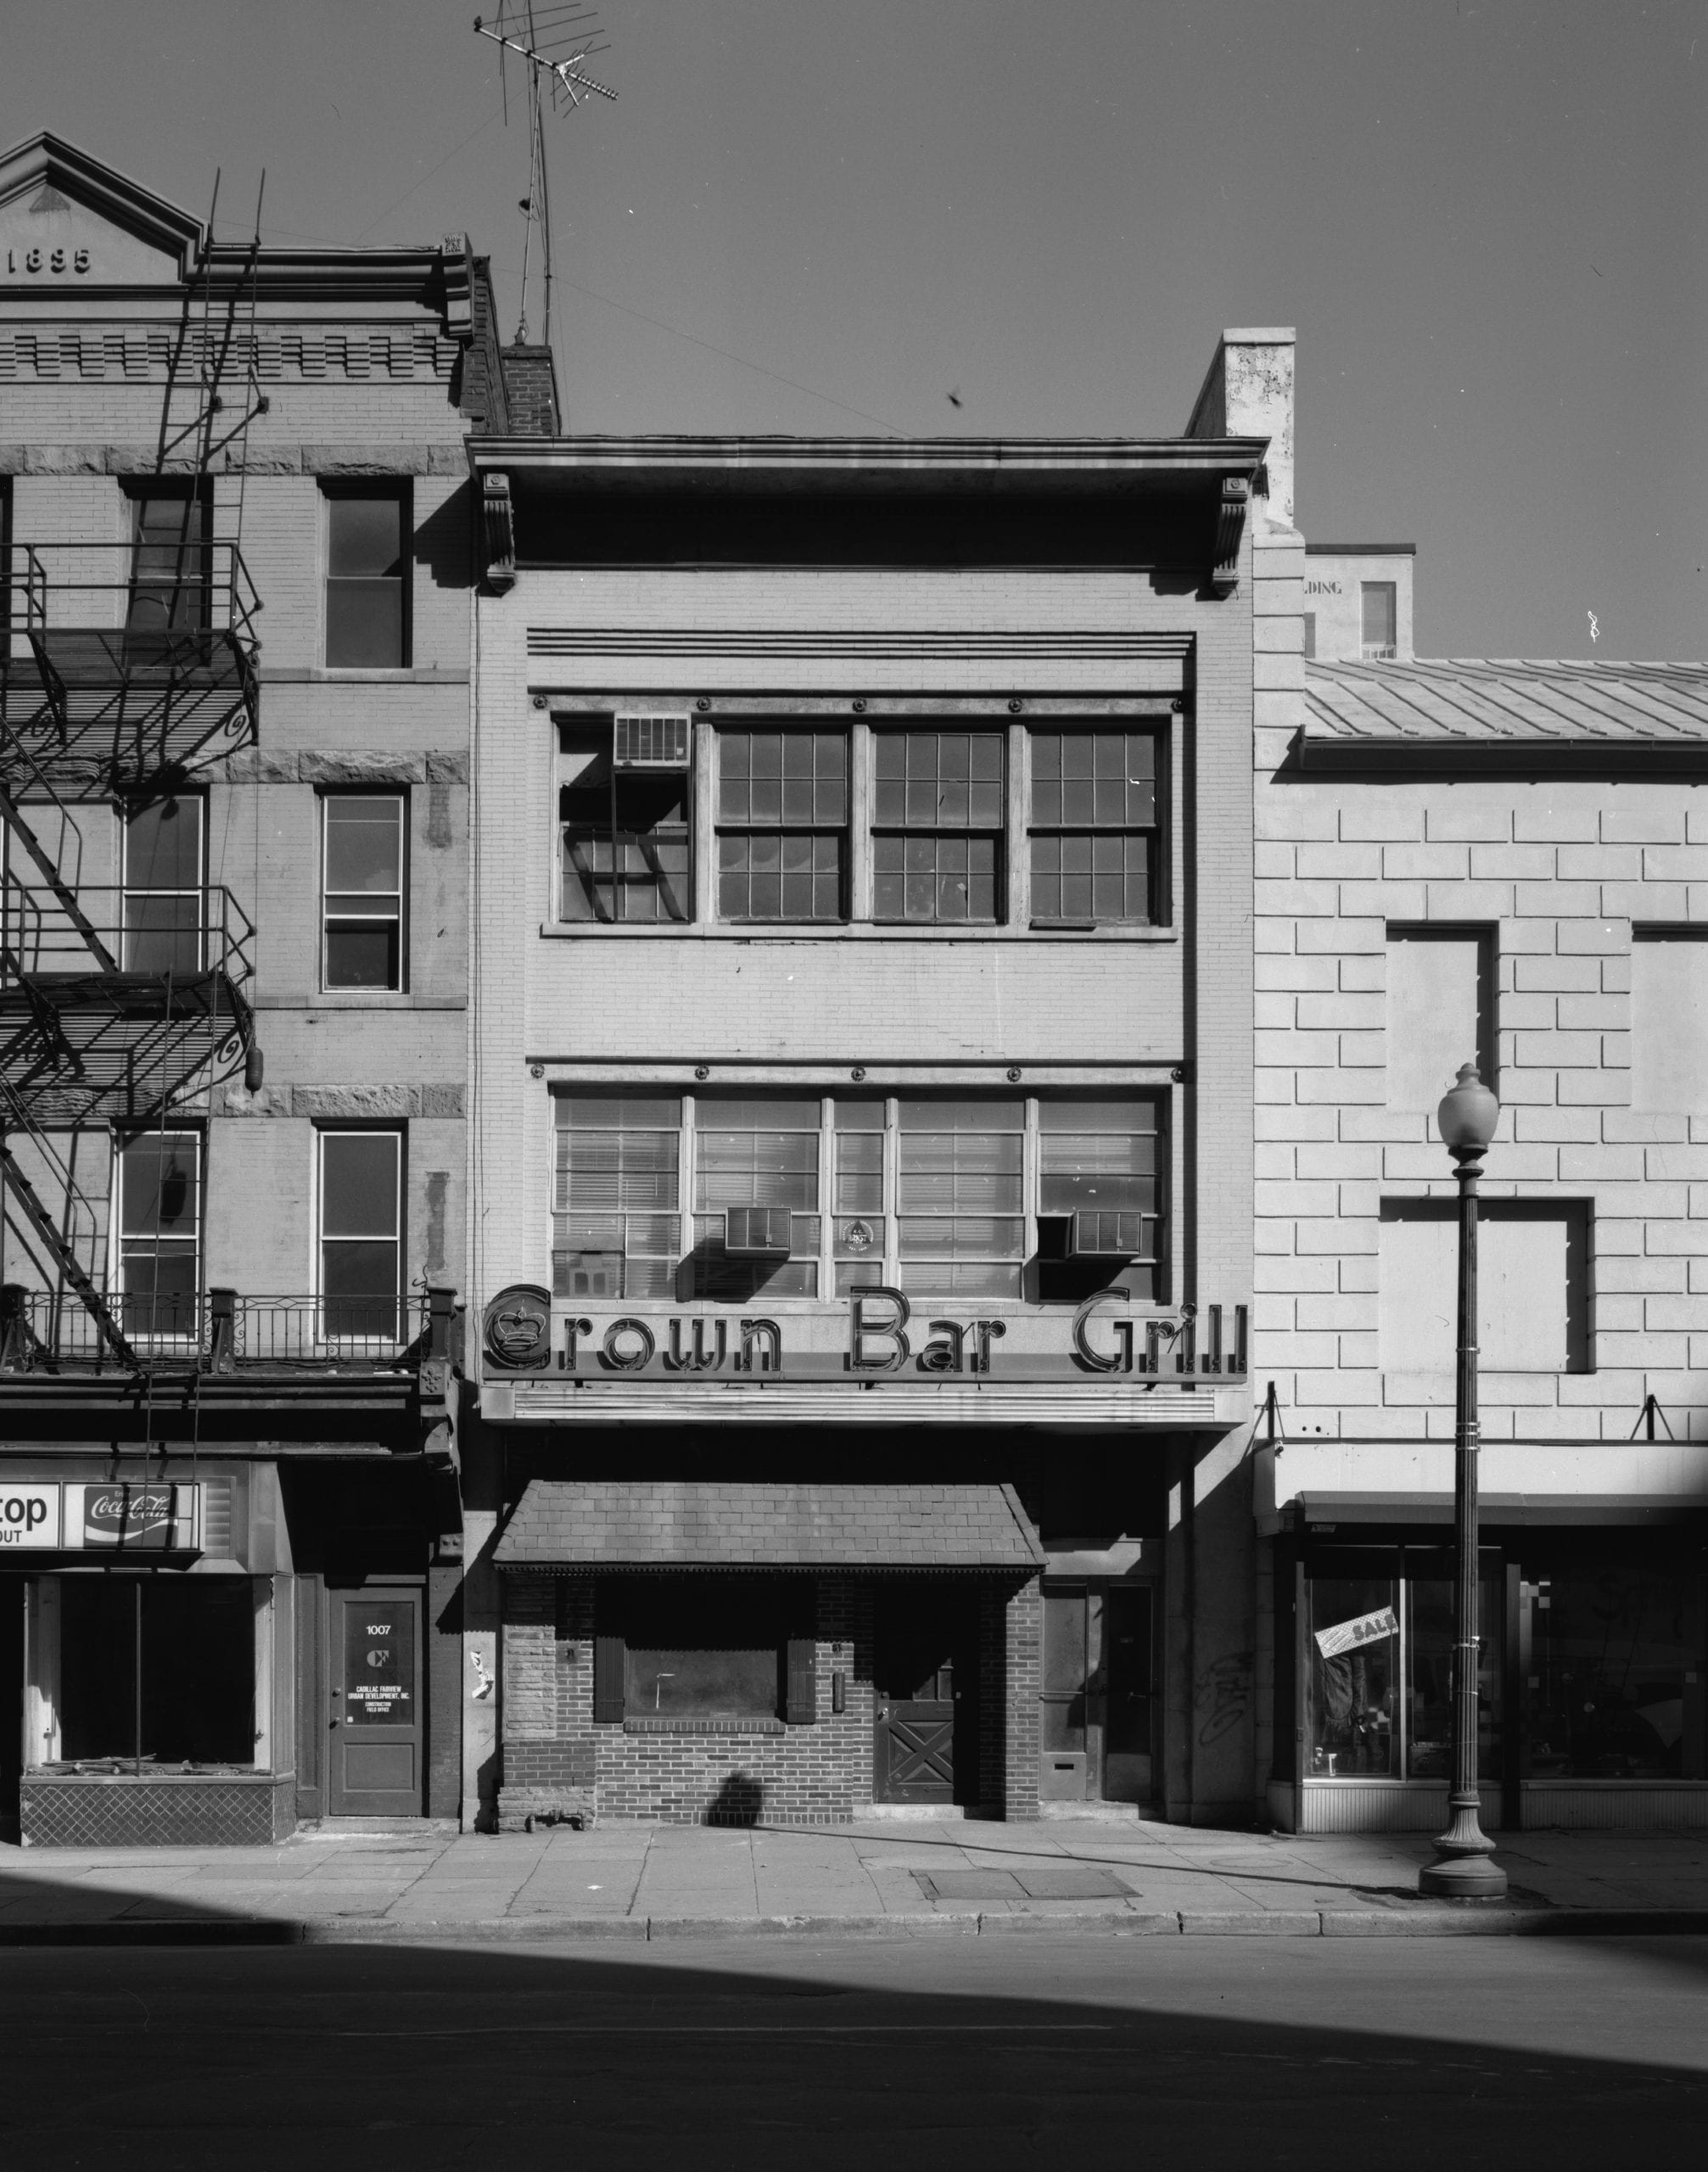 View north showing front facade - 1005 E Street, Northwest (Commercial), Square 347, Washington, District of Columbia, DC